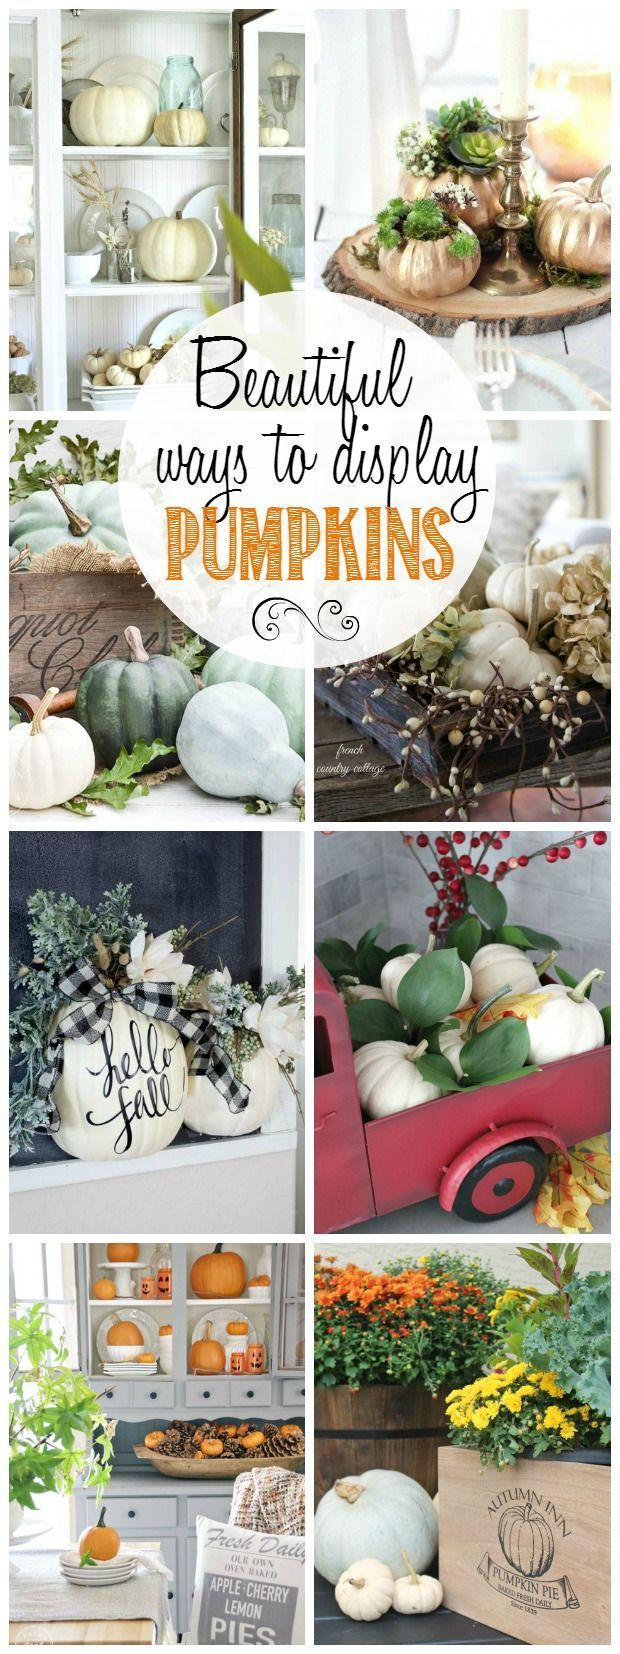 26 beautiful burgundy accents for fall home d 233 cor digsdigs - Beautiful Ways To Display Pumpkins For Your Fall Decor